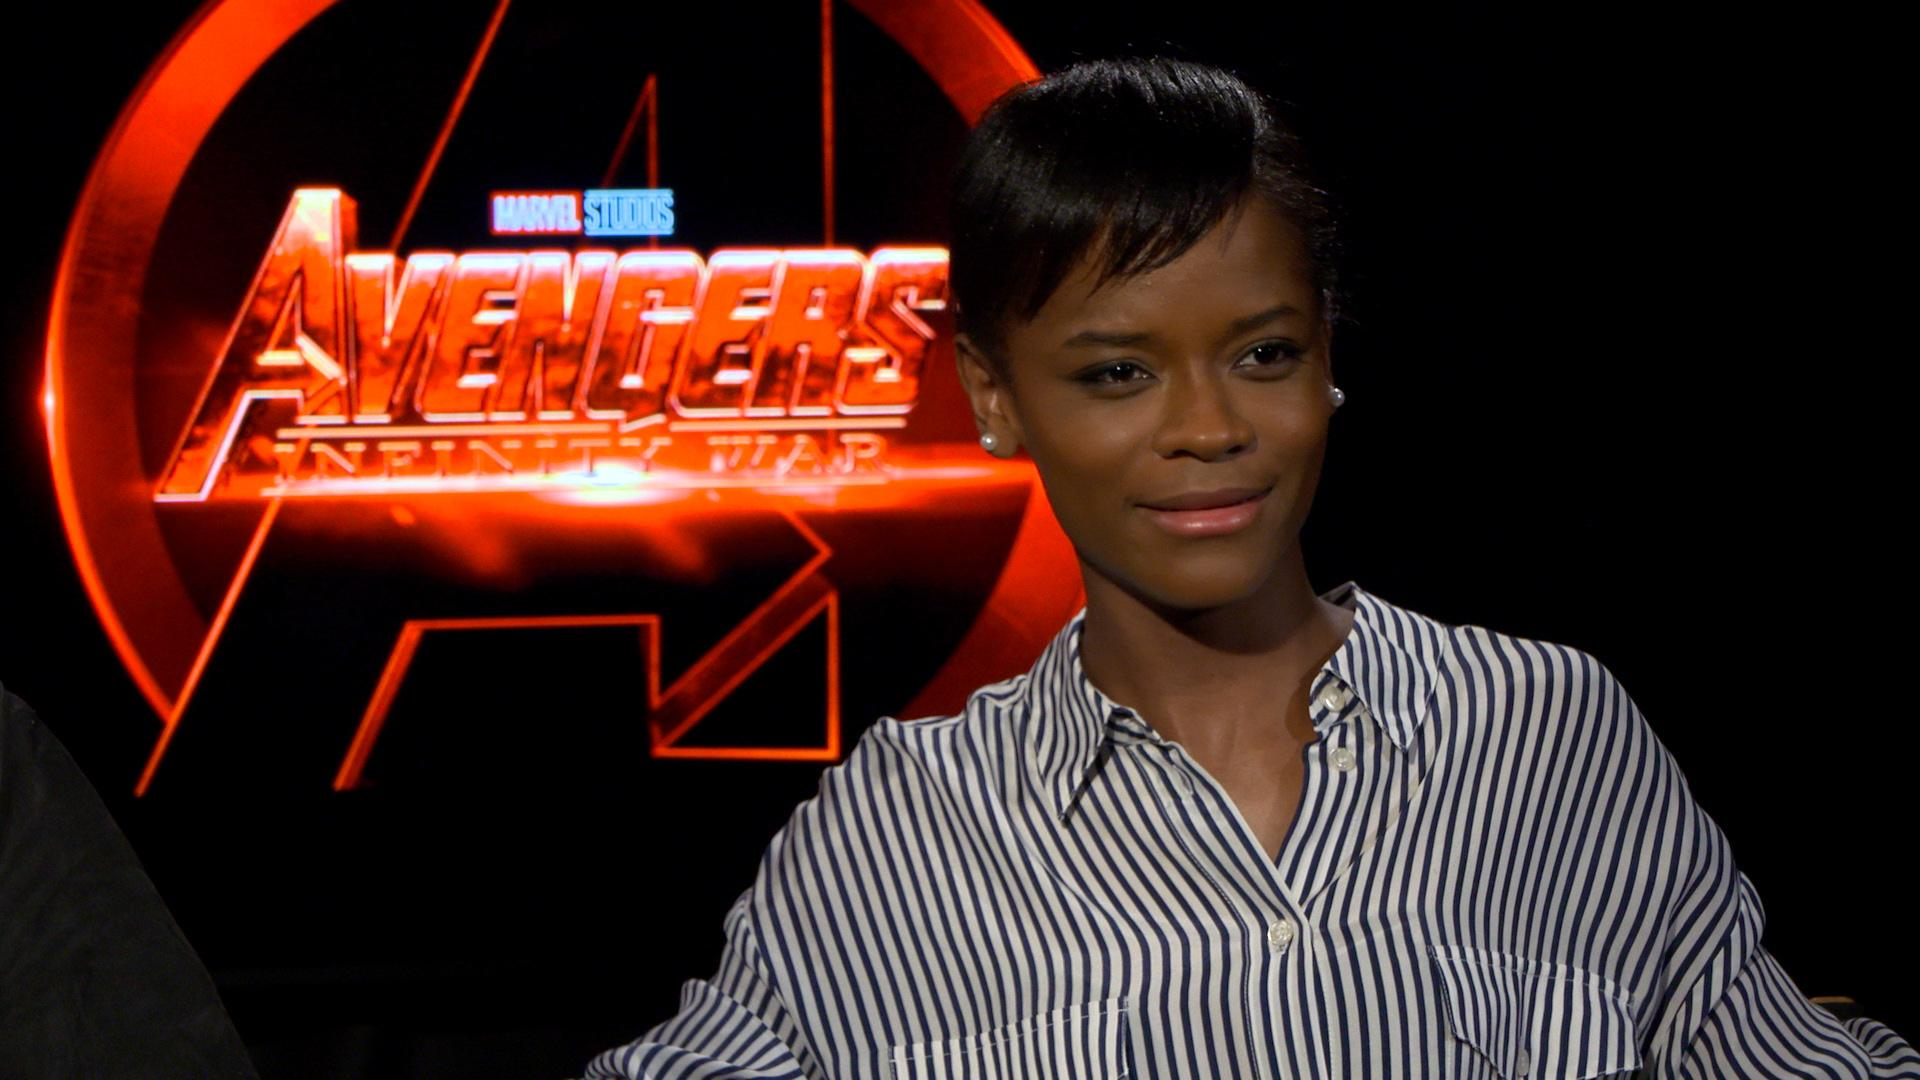 'Black Panther' star Letitia Wright proudly owns her Disney princess status